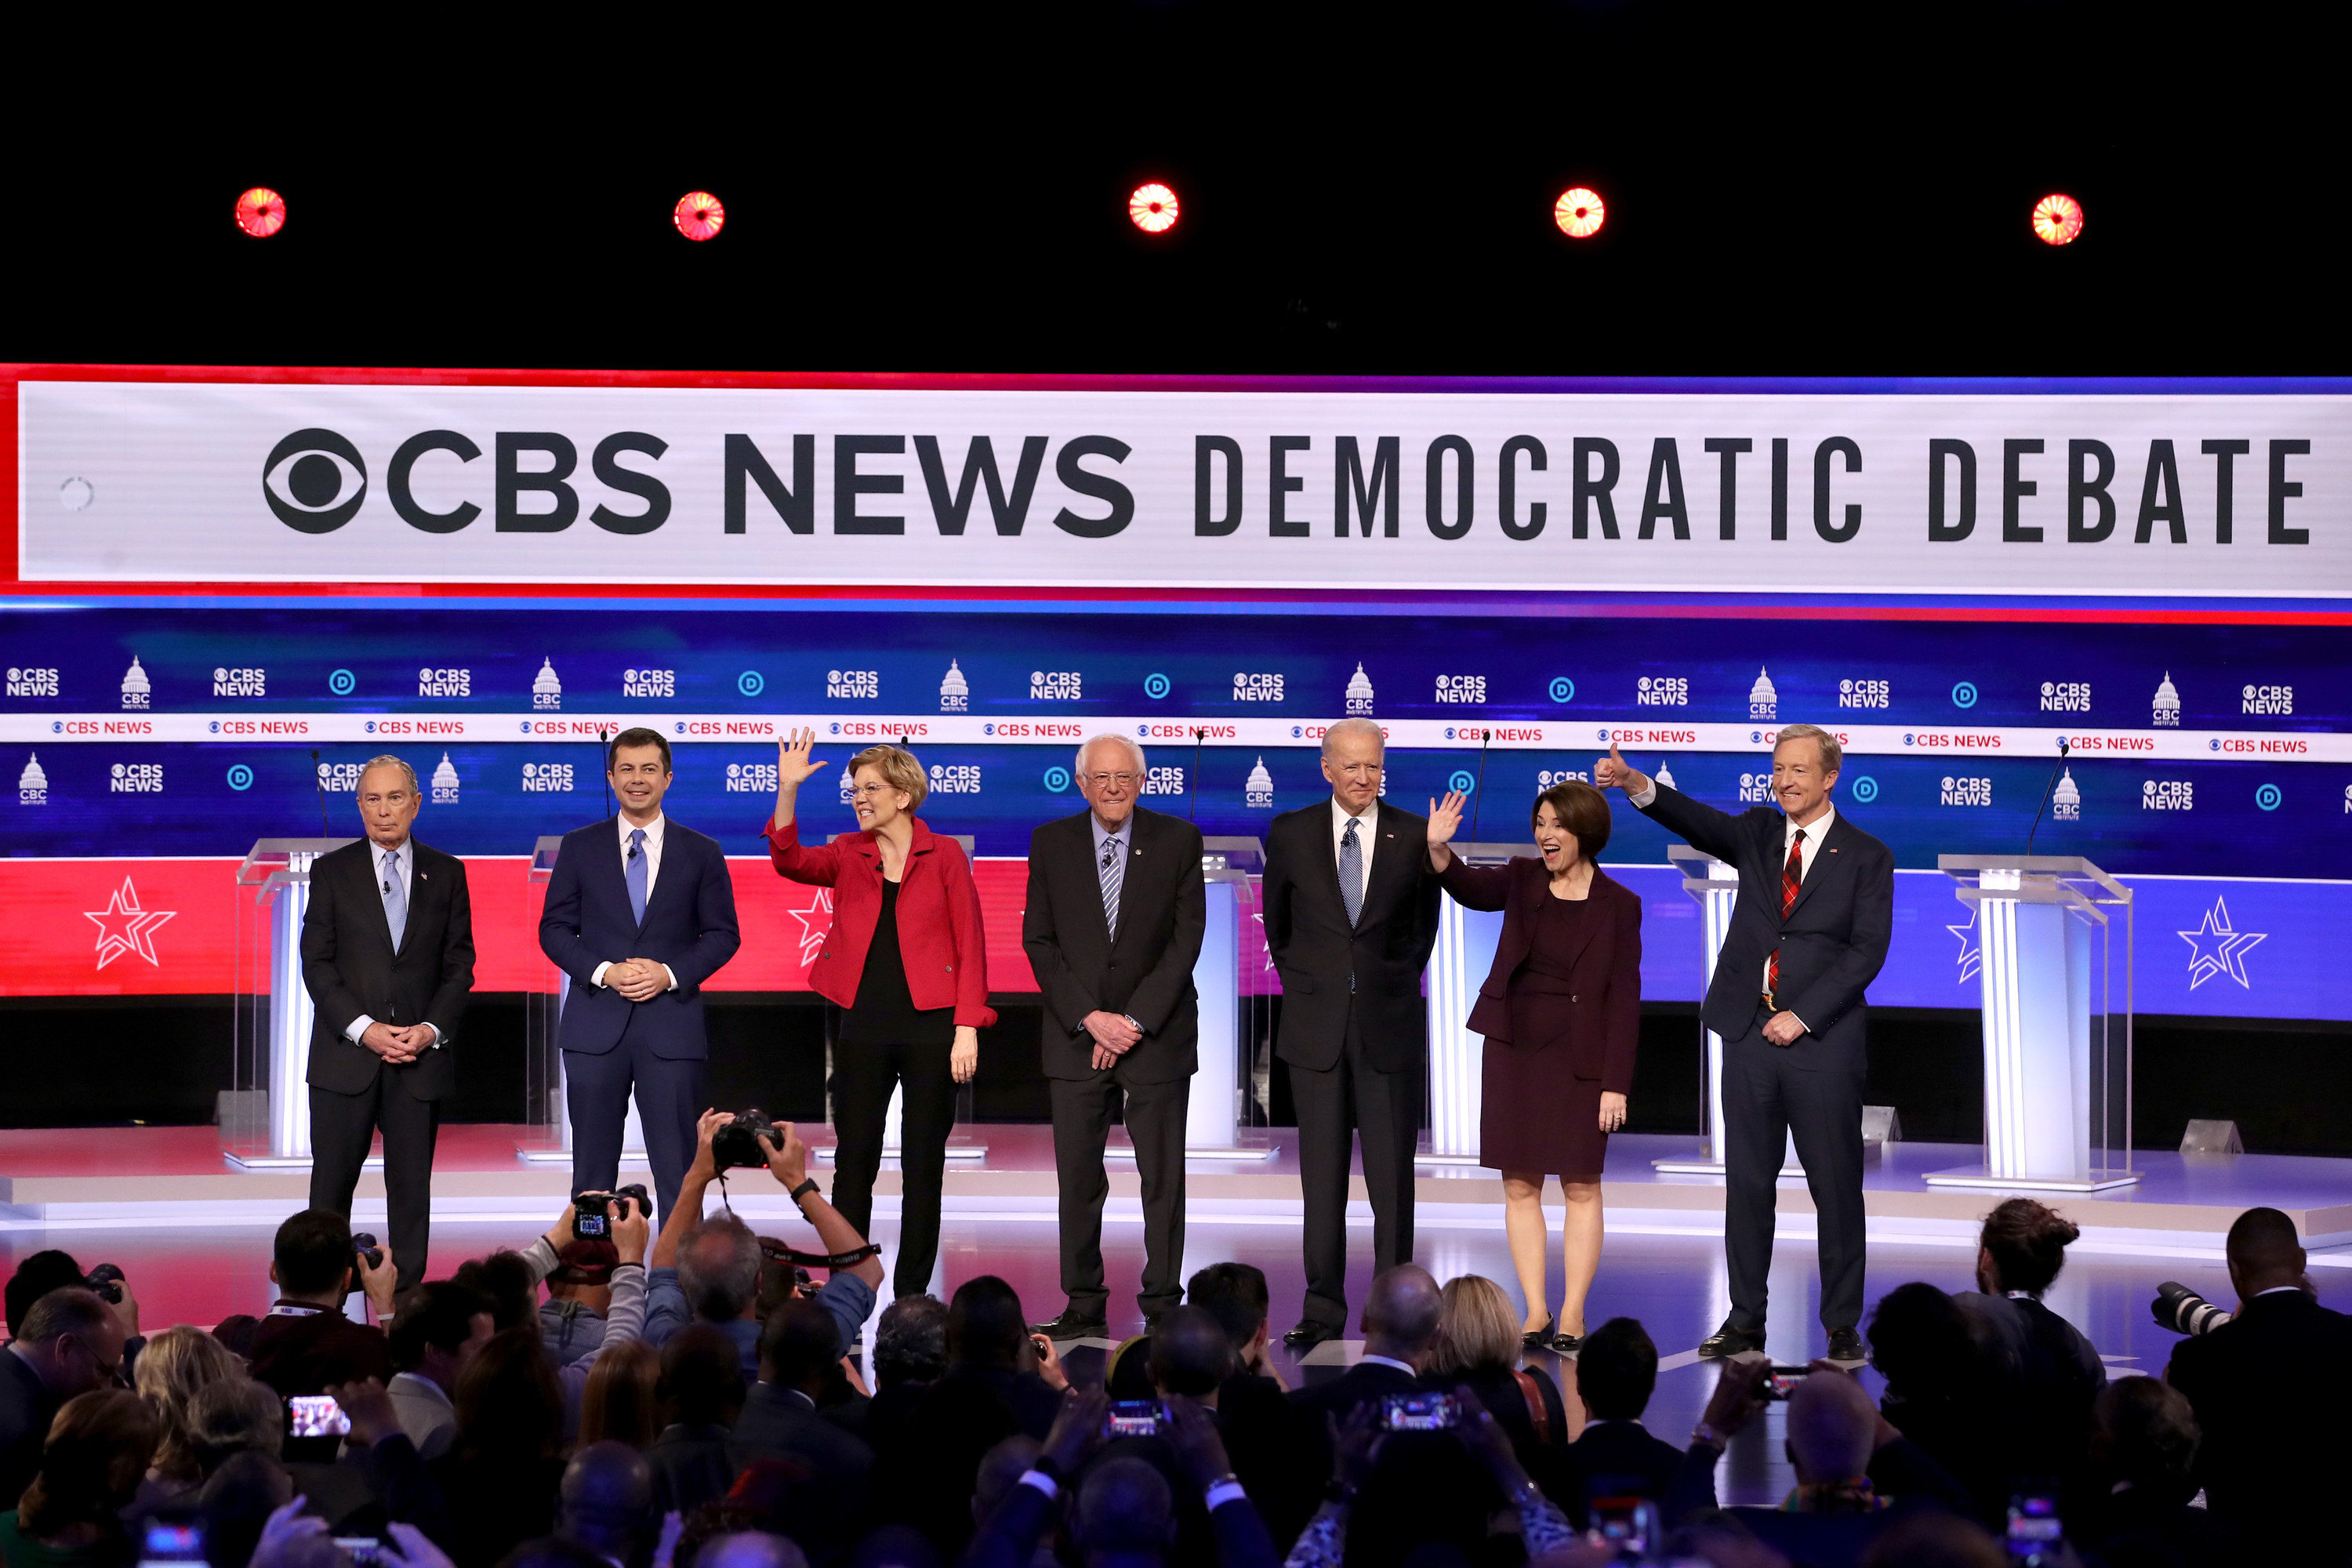 Seven Democratic presidential candidates standing on the debate stage